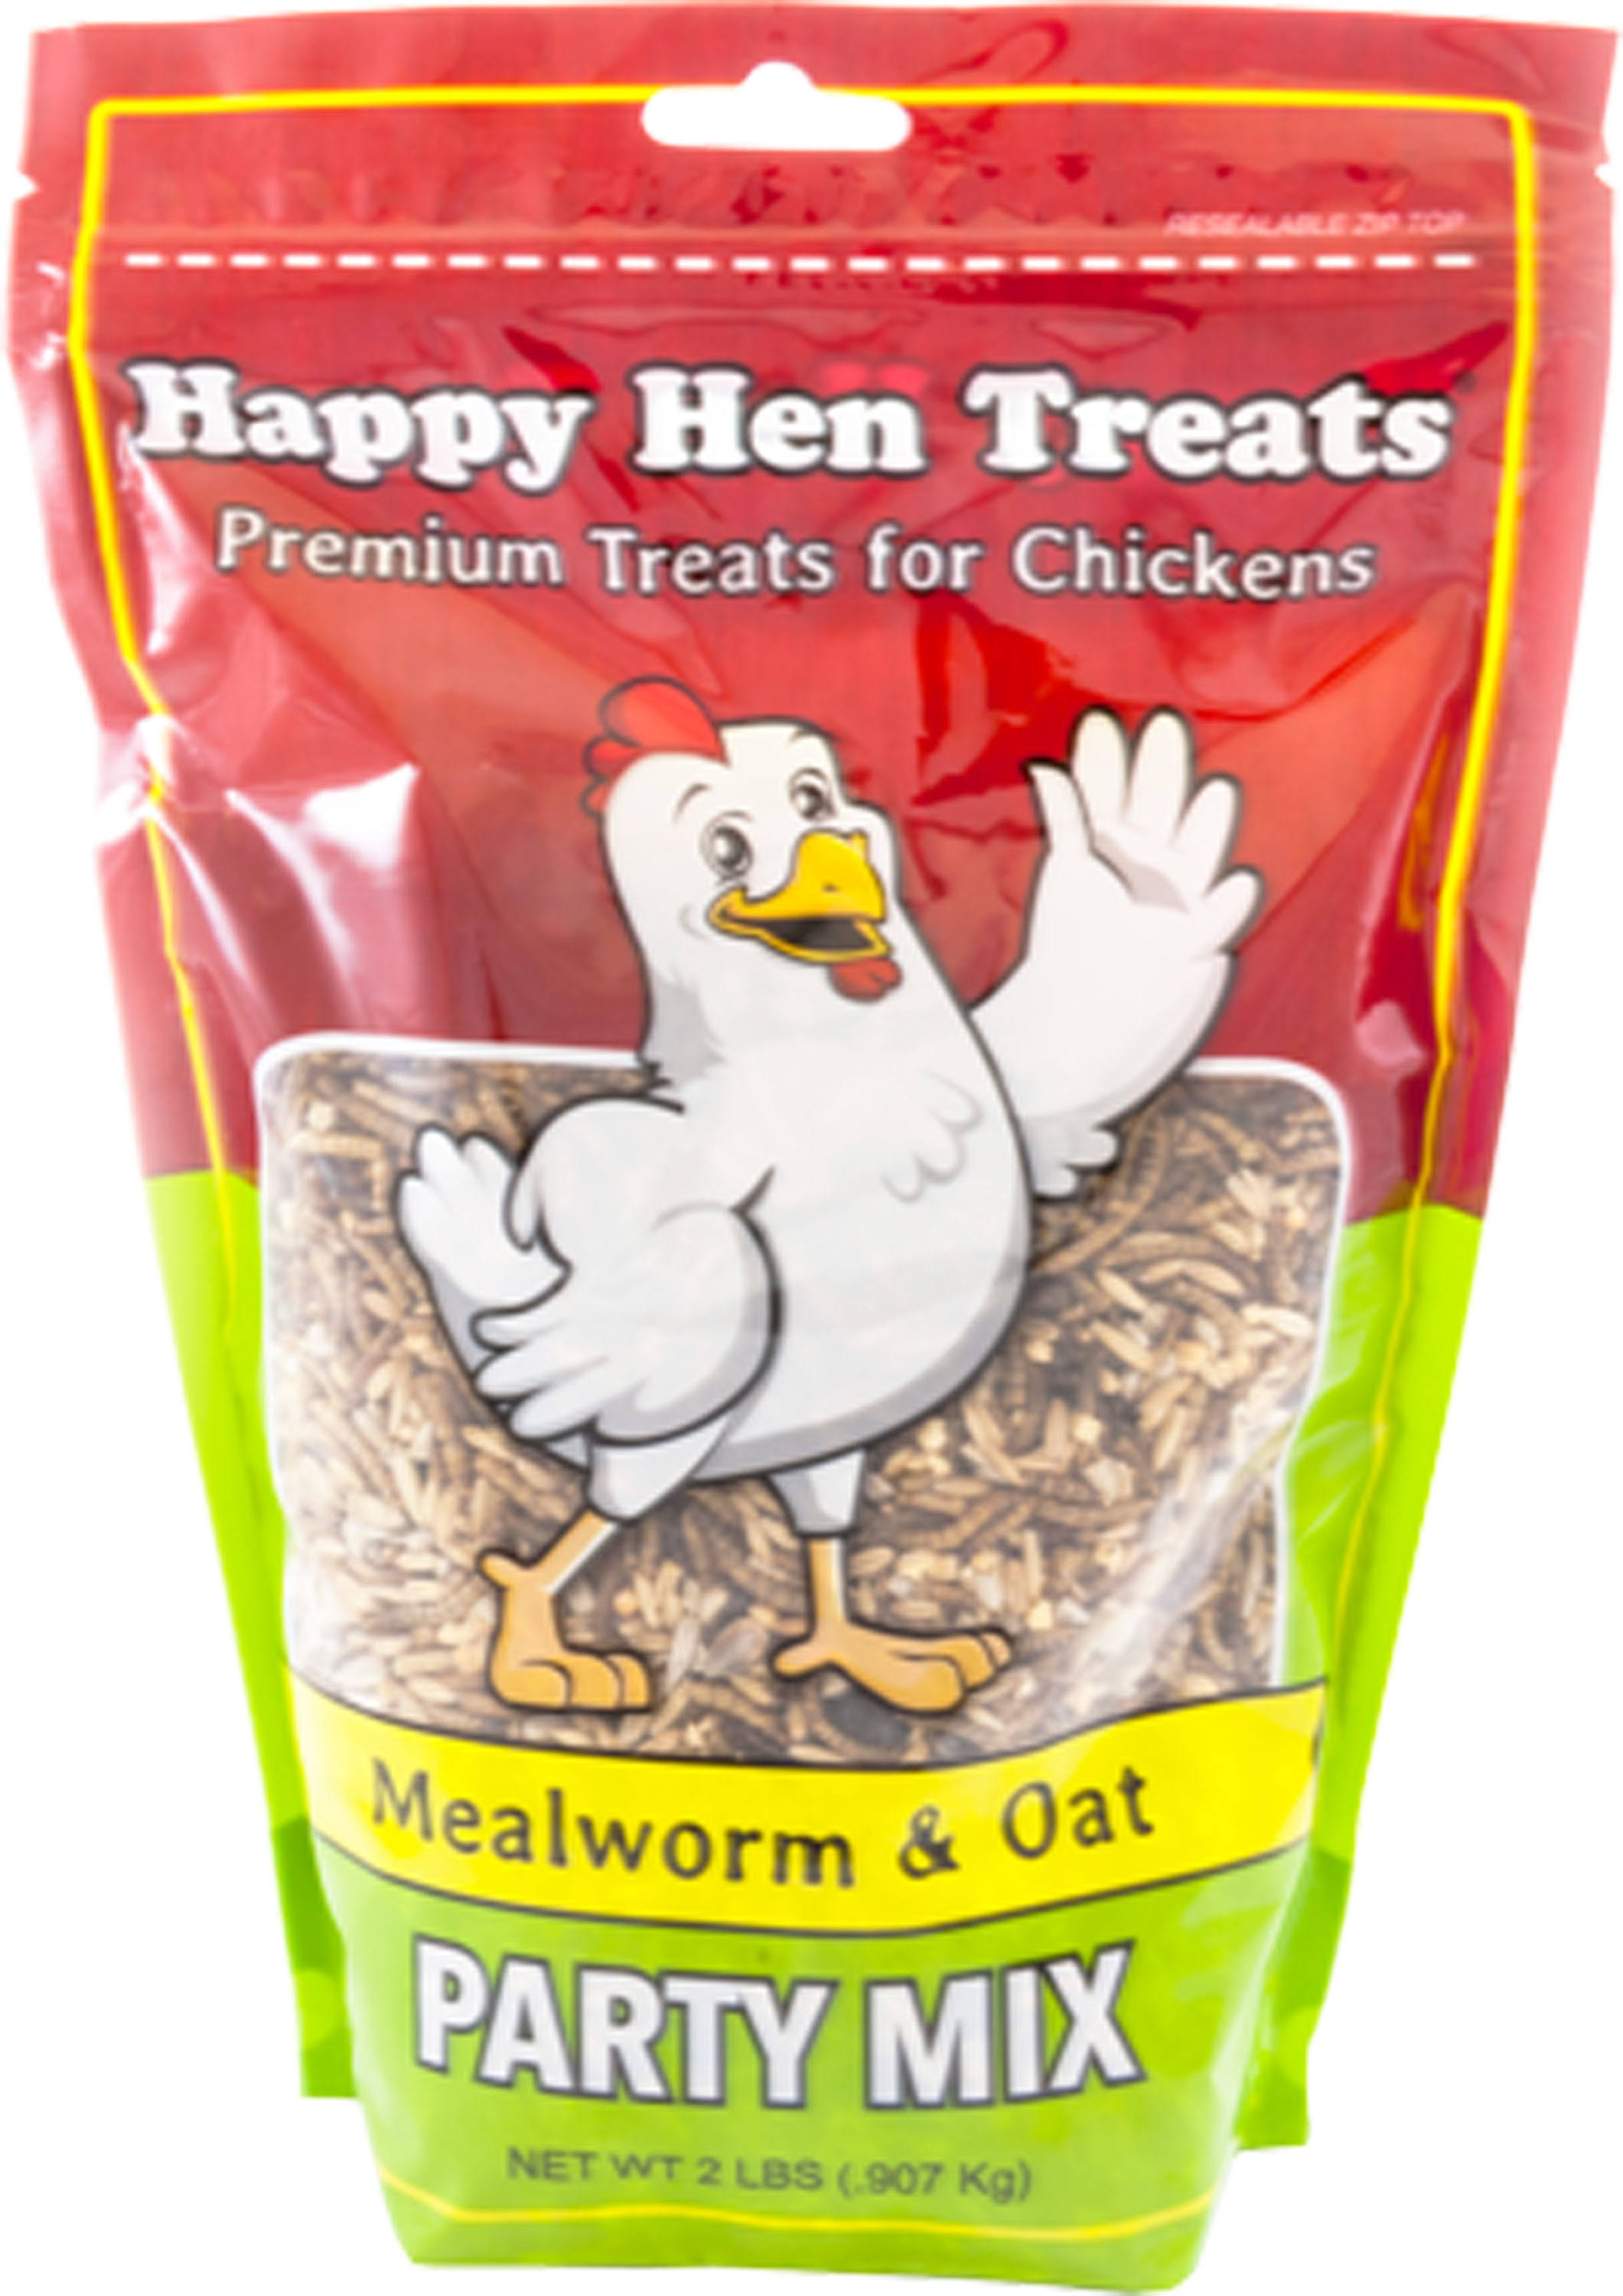 Happy Hen Treats Party Mix Mealworm and Oats - 2lb